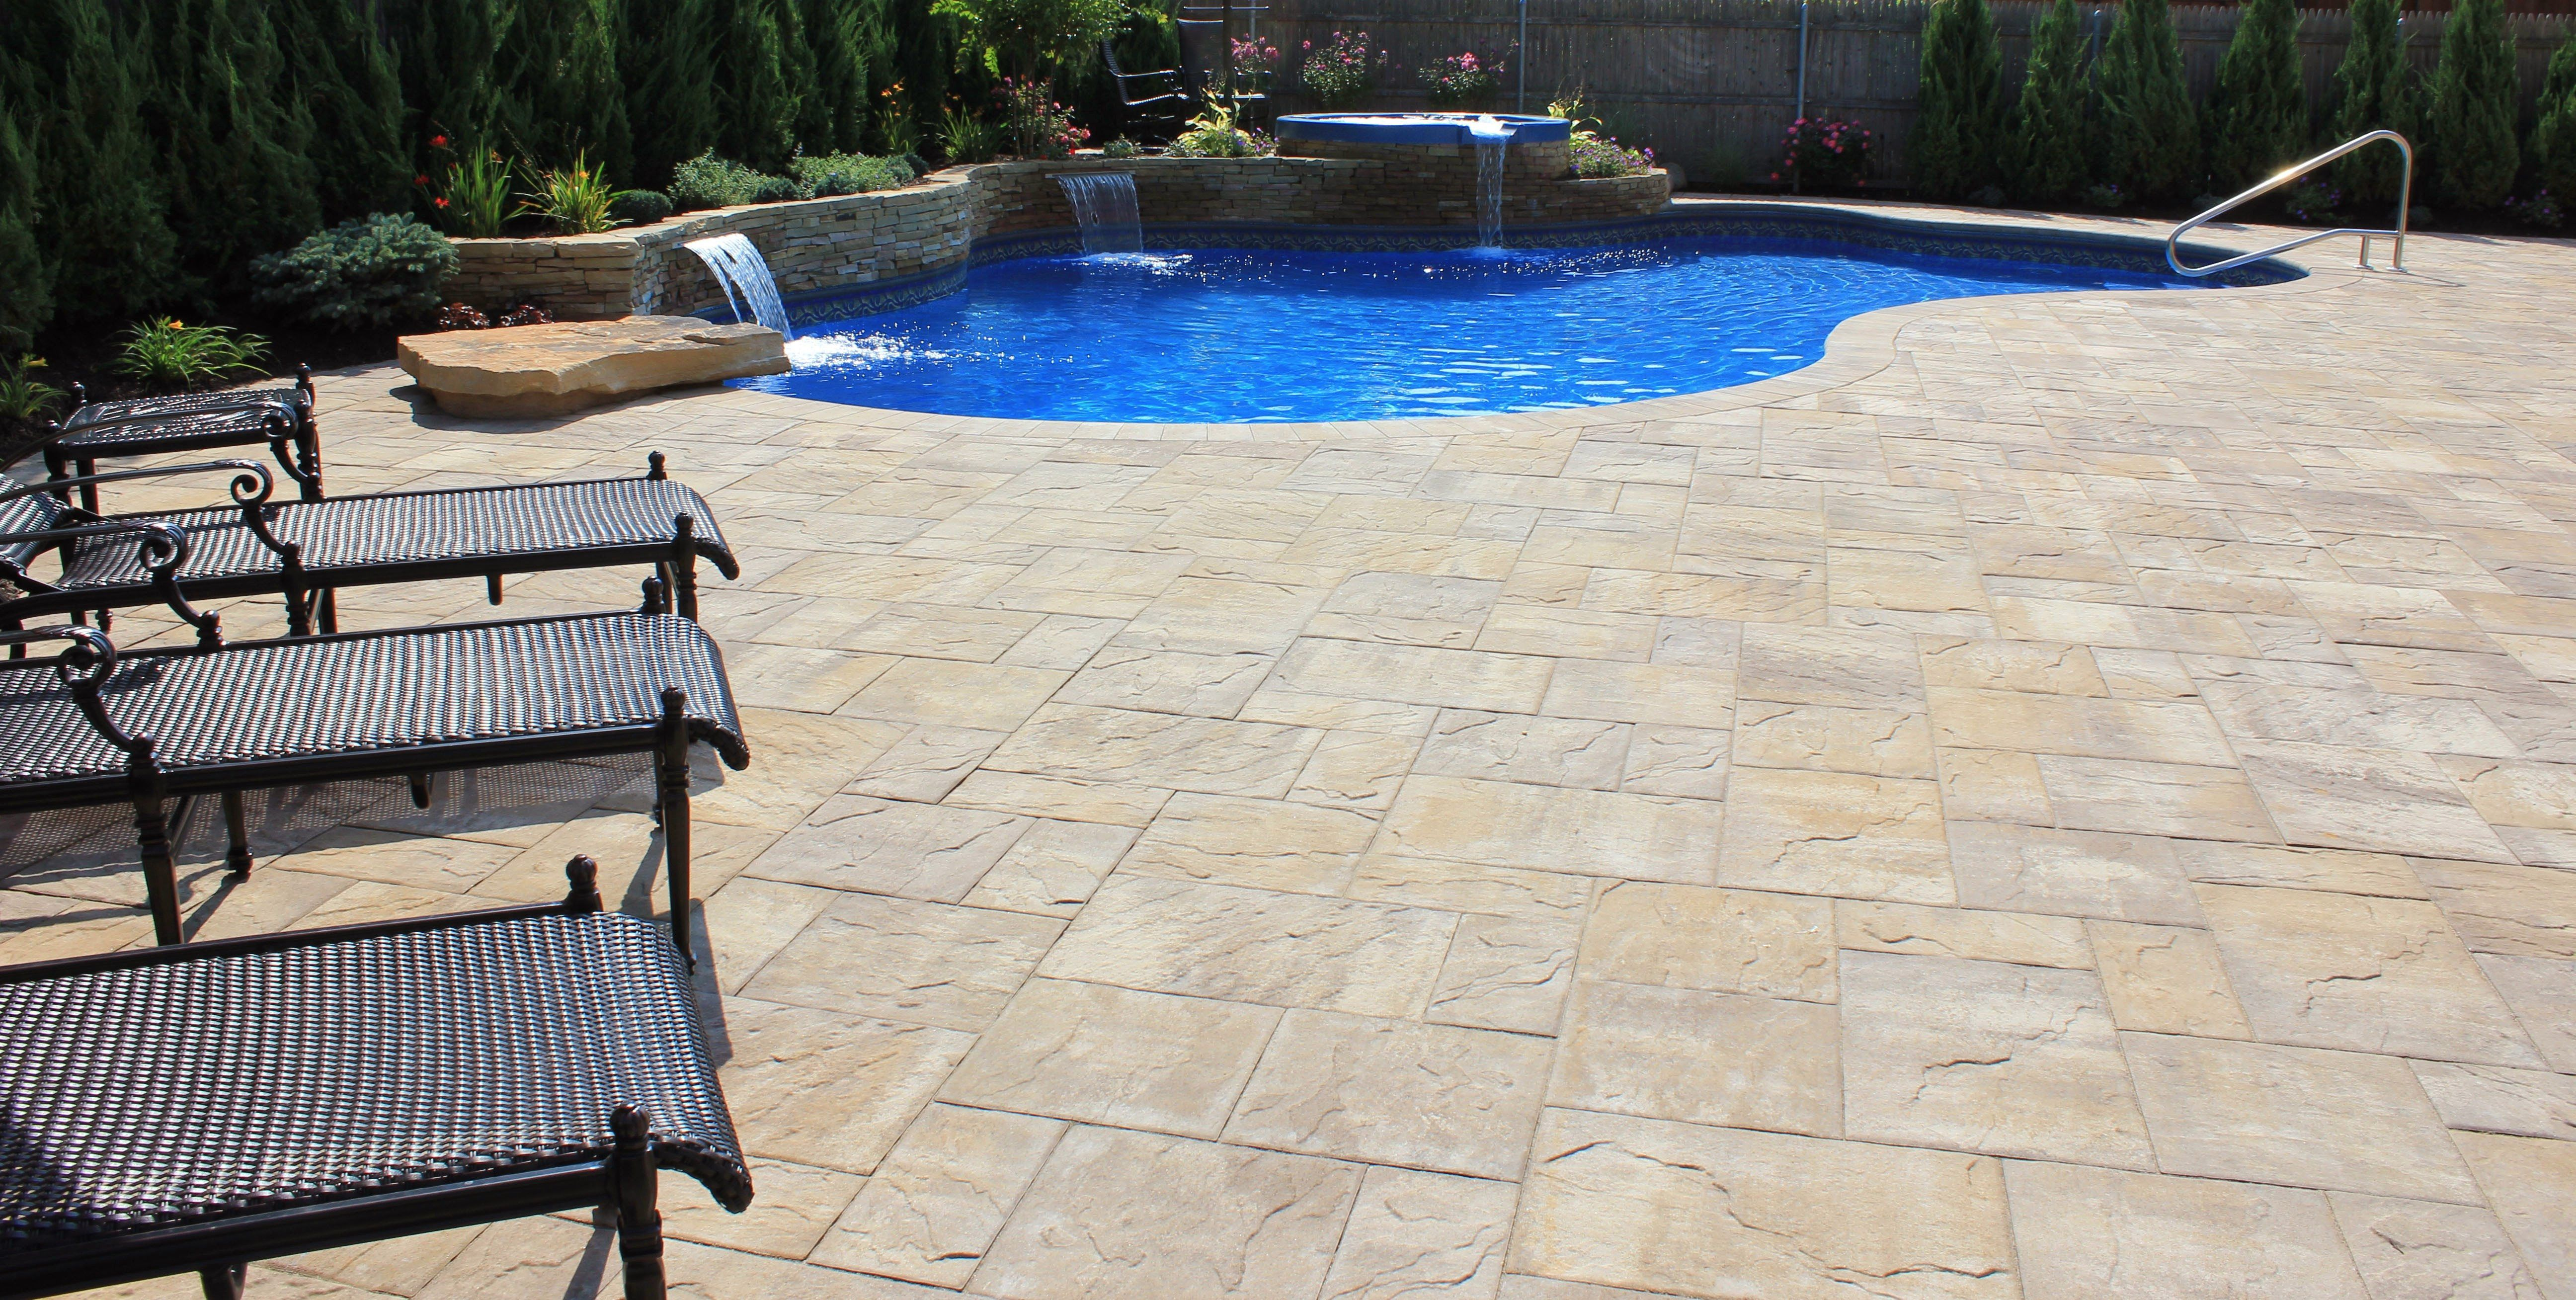 Cambridge Ledgestone Xl Sahara Chestnut Lite Paver Pool Patio Merrick Long Island Ny